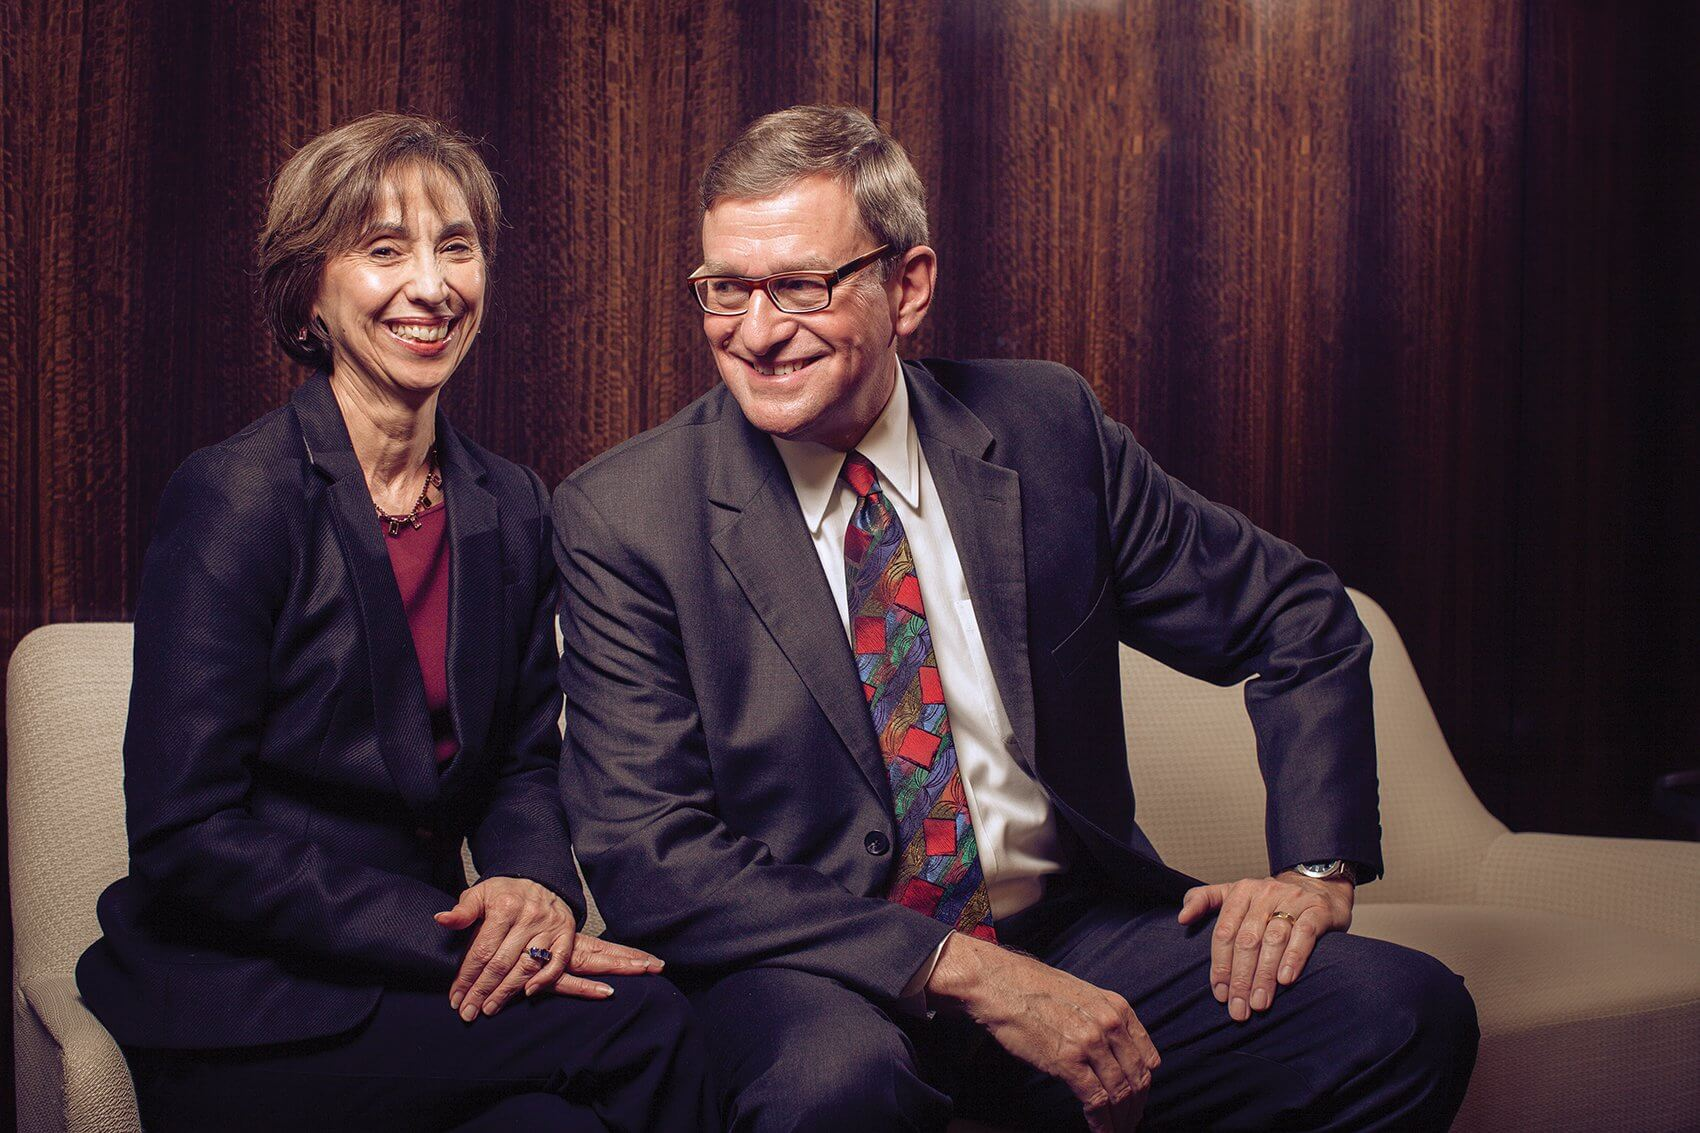 Rebecca Garcia, Ph.D., and Thomas C. Goodman, Ph.D.